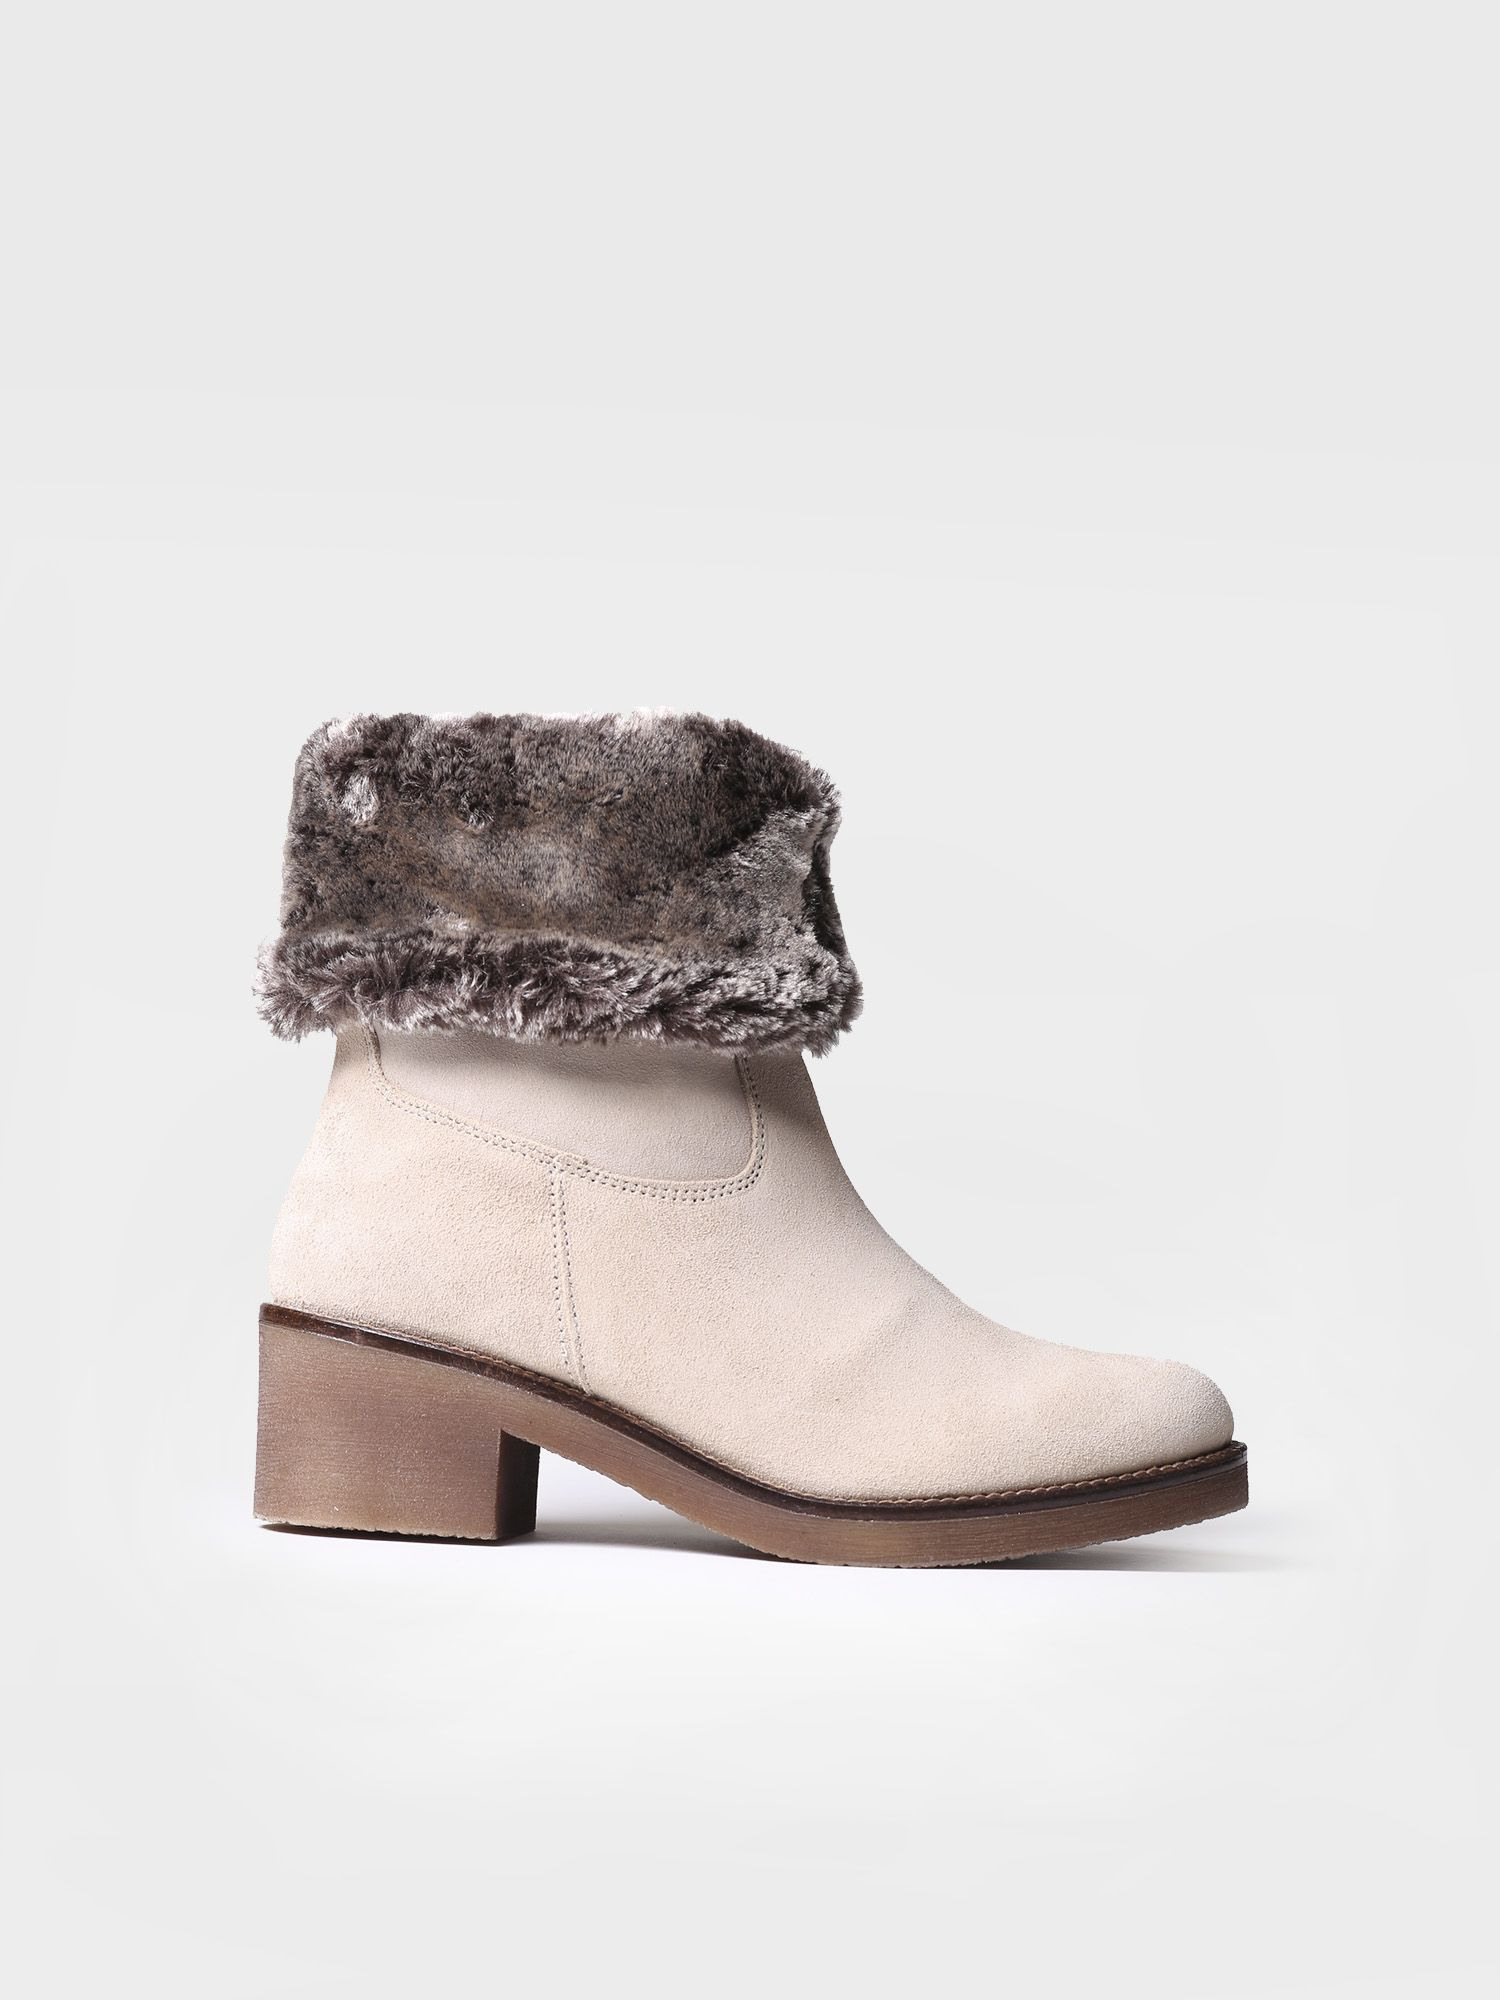 Mid heel bootie in stone suede - PECOS-SYF